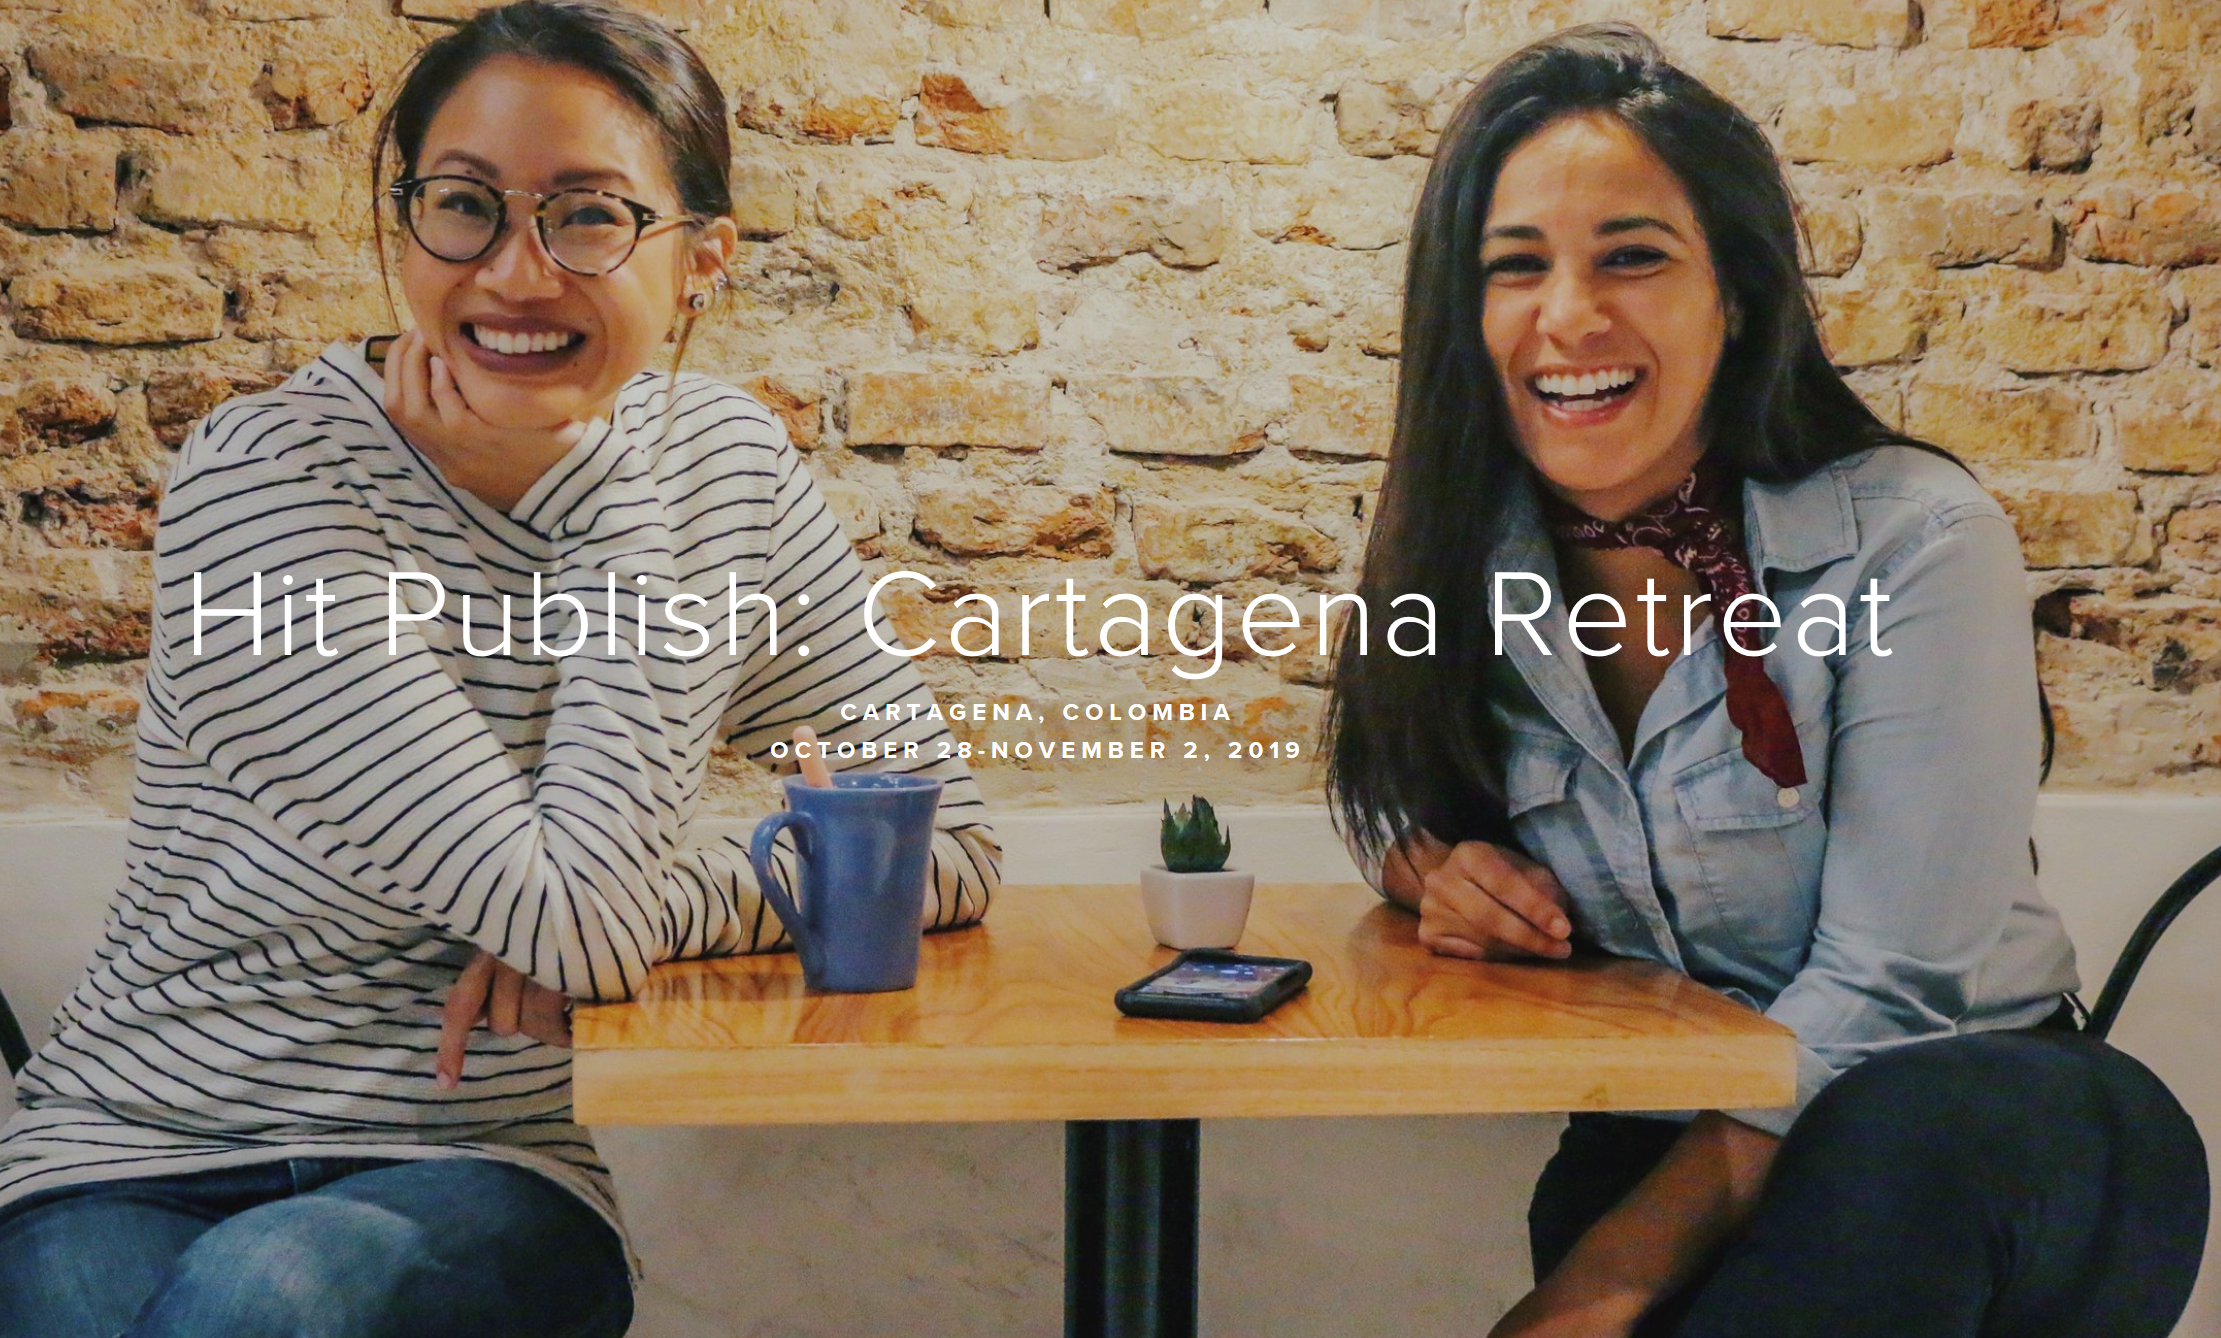 Hit Publish: Cartagena - October 28 - Nov. 2, 2019This retreat is focused on helping content creators and social media marketers reach the next level. Cassandra T. Le and Andrea Valeria lead this weeklong excursion where you will learn best practices for creating unique and attention-grabbing content for multiple platforms and walk away with all the tools you need to avoid burn-out while creating content guaranteed to grow your brand and business.